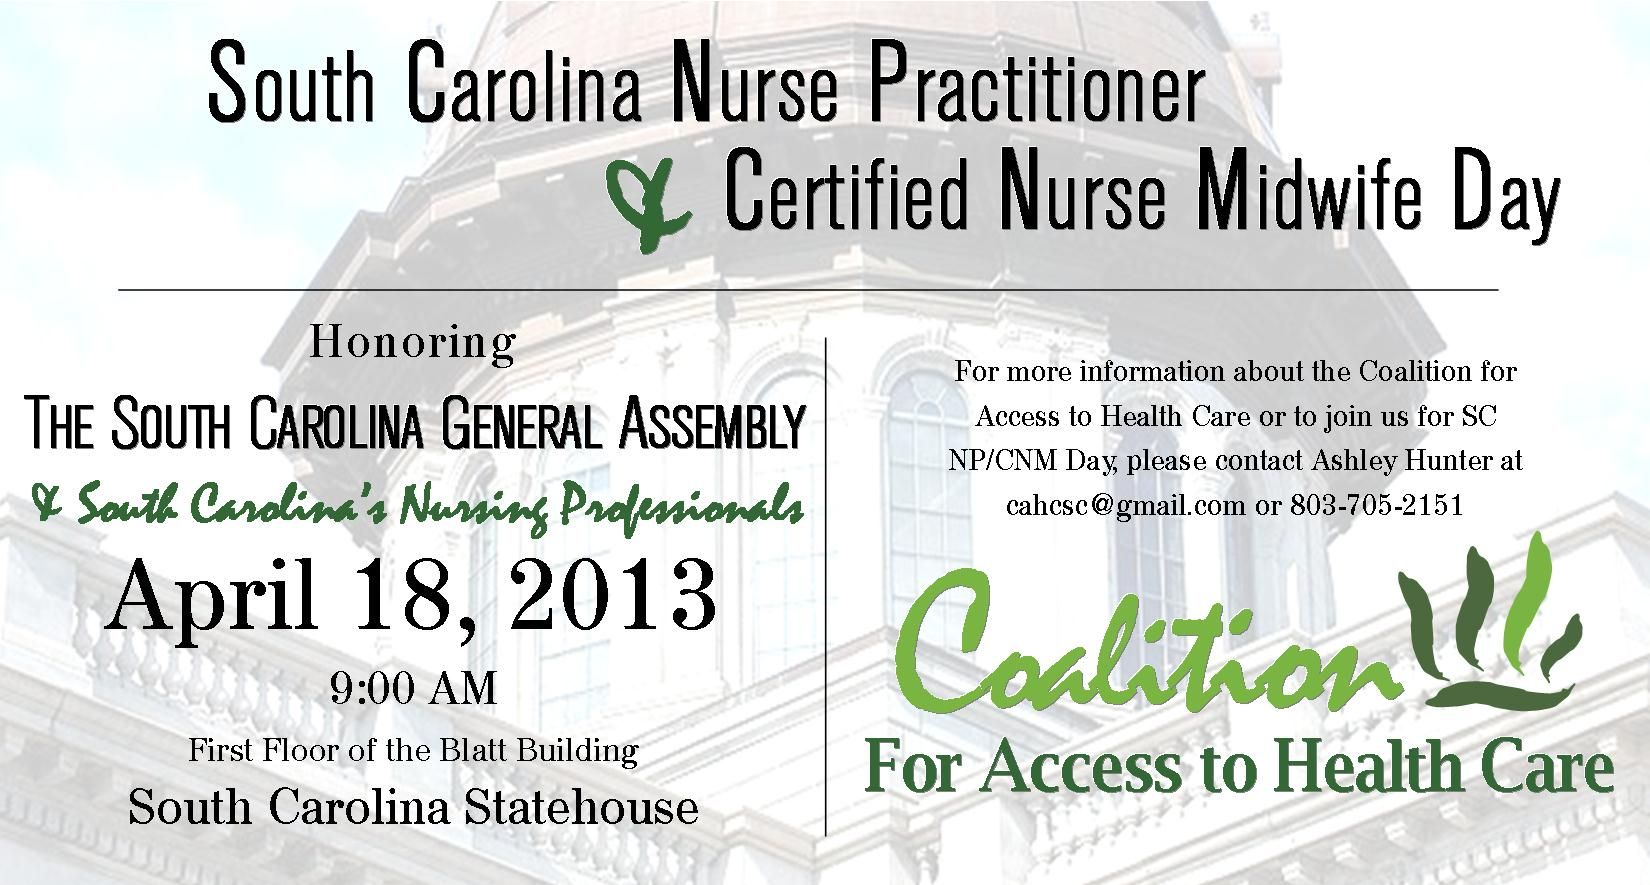 Thursday, April 18th is NP/CNM Day at the SC Statehouse